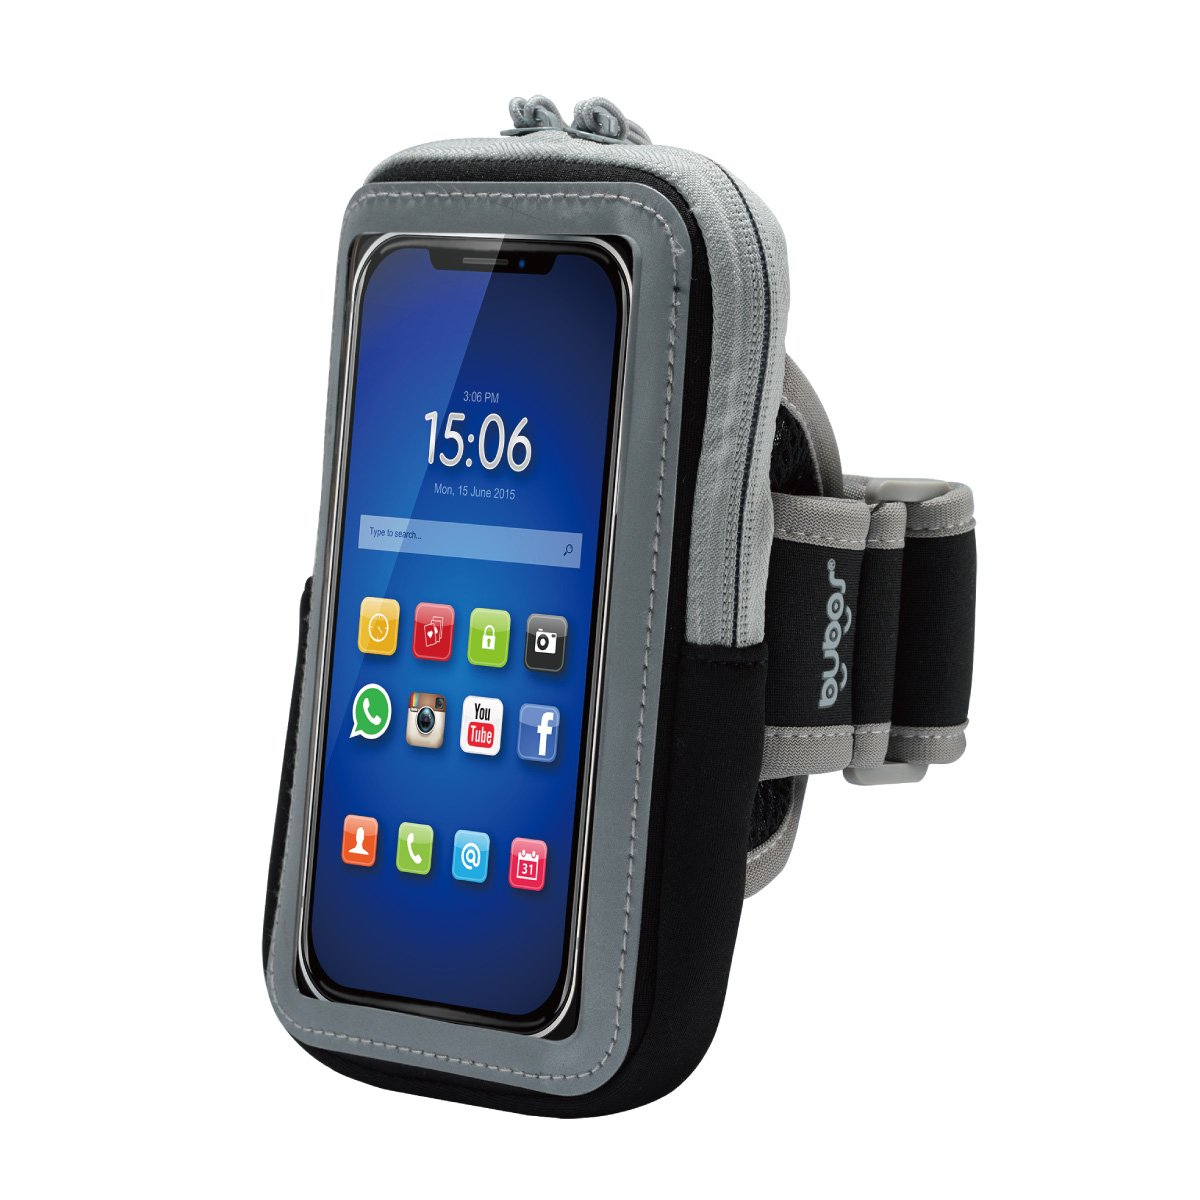 BUBOS Multifunctional Sports Armband, watertproof Running Exercise Gym Fitness Cellphone Sportband Bag Key Holder for iPhone 6 6S 7 Plus Touch Android Samsung Galaxy S5 S6 S7 Edge.